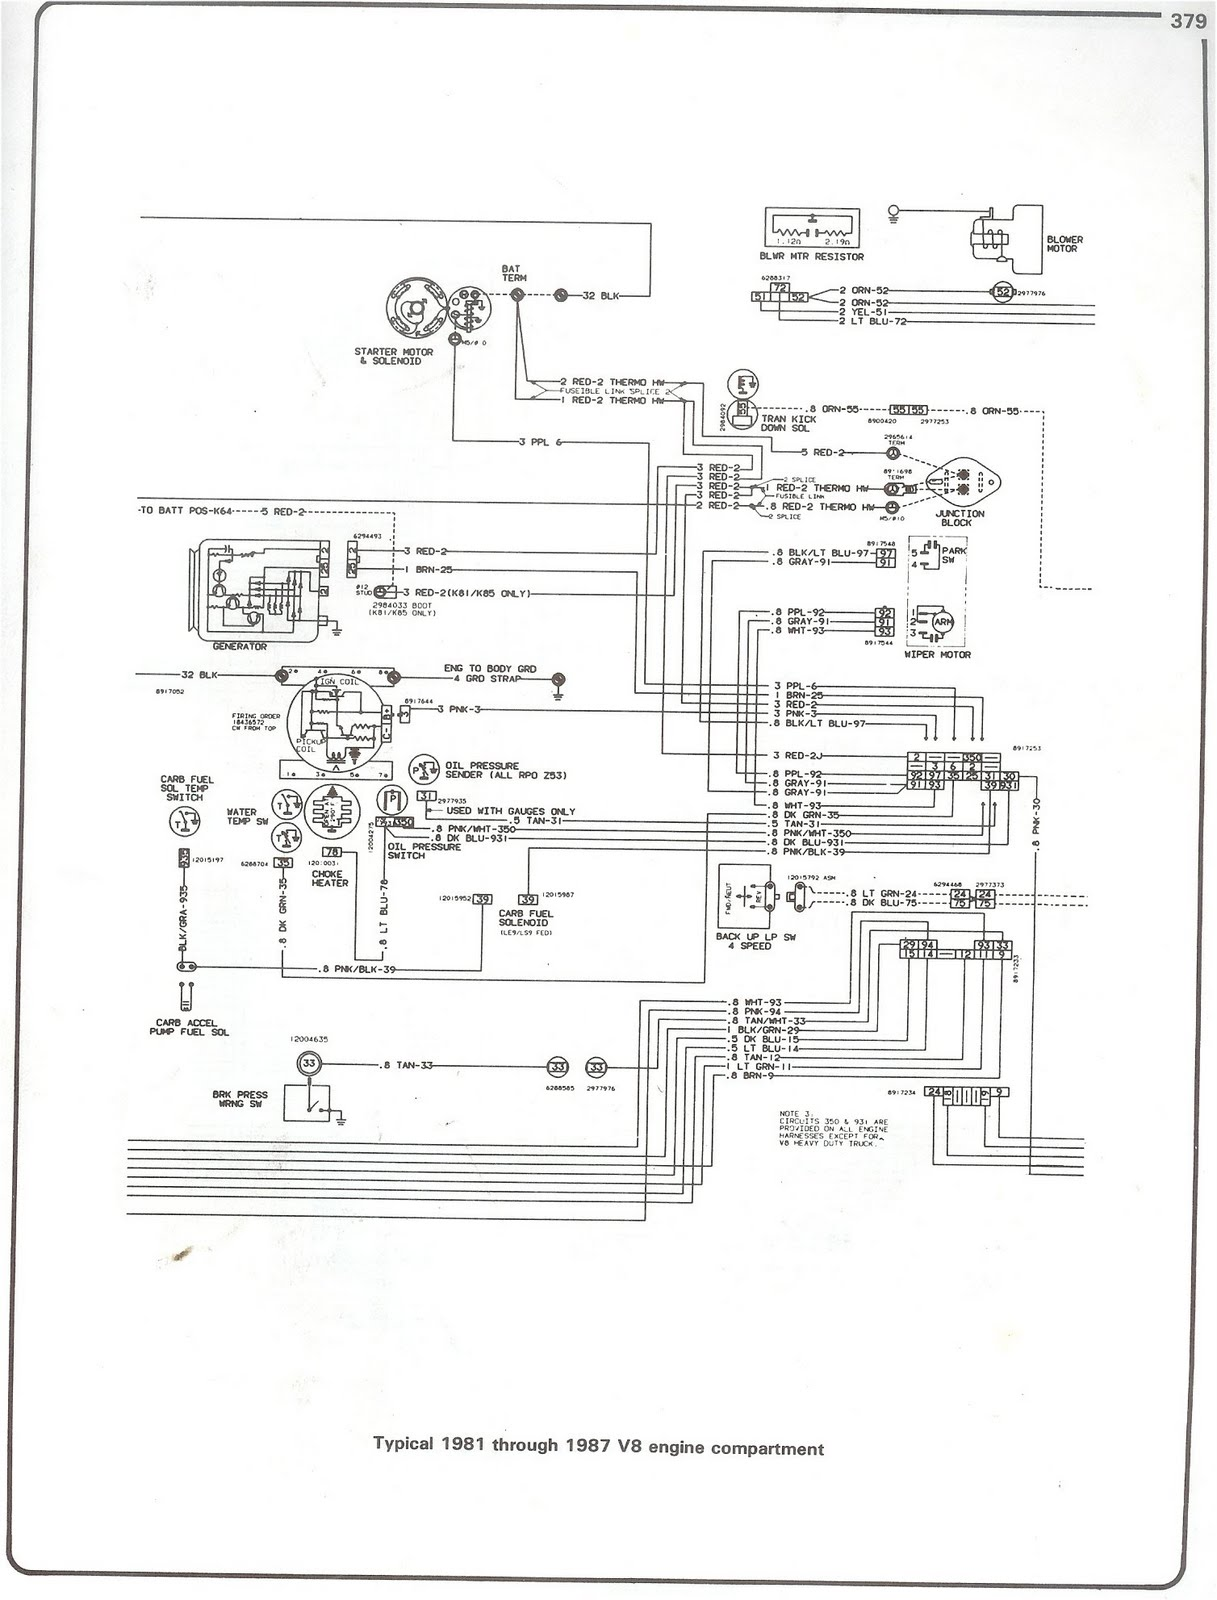 1981 gm fuse box diagram wiring diagram1981 gm fuse box diagram